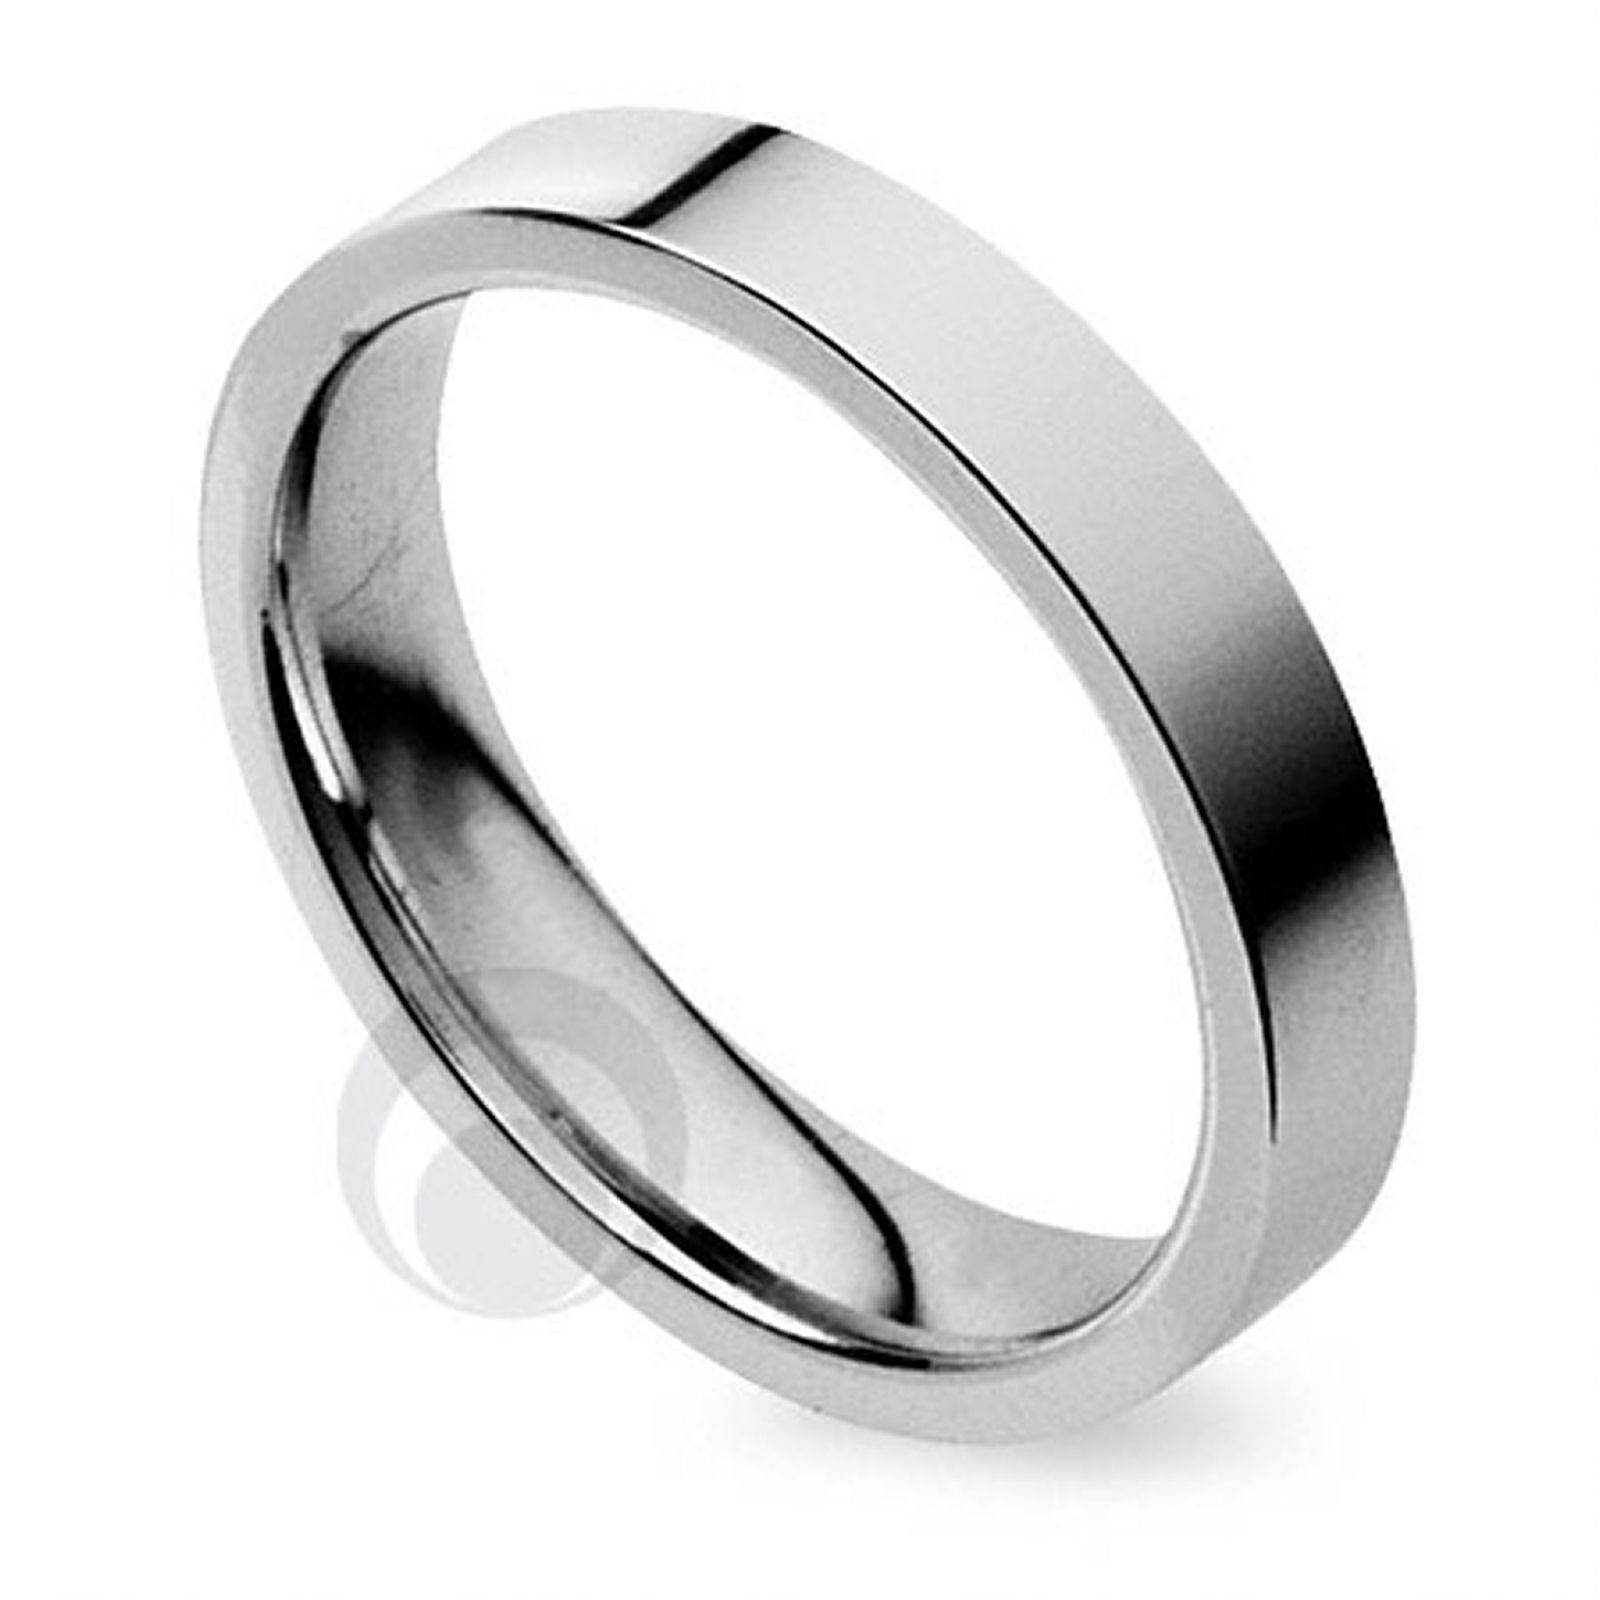 Mens Platinum Wedding Bands For The Wedding | Wedding Ideas With Platinum Band Wedding Rings (View 9 of 15)